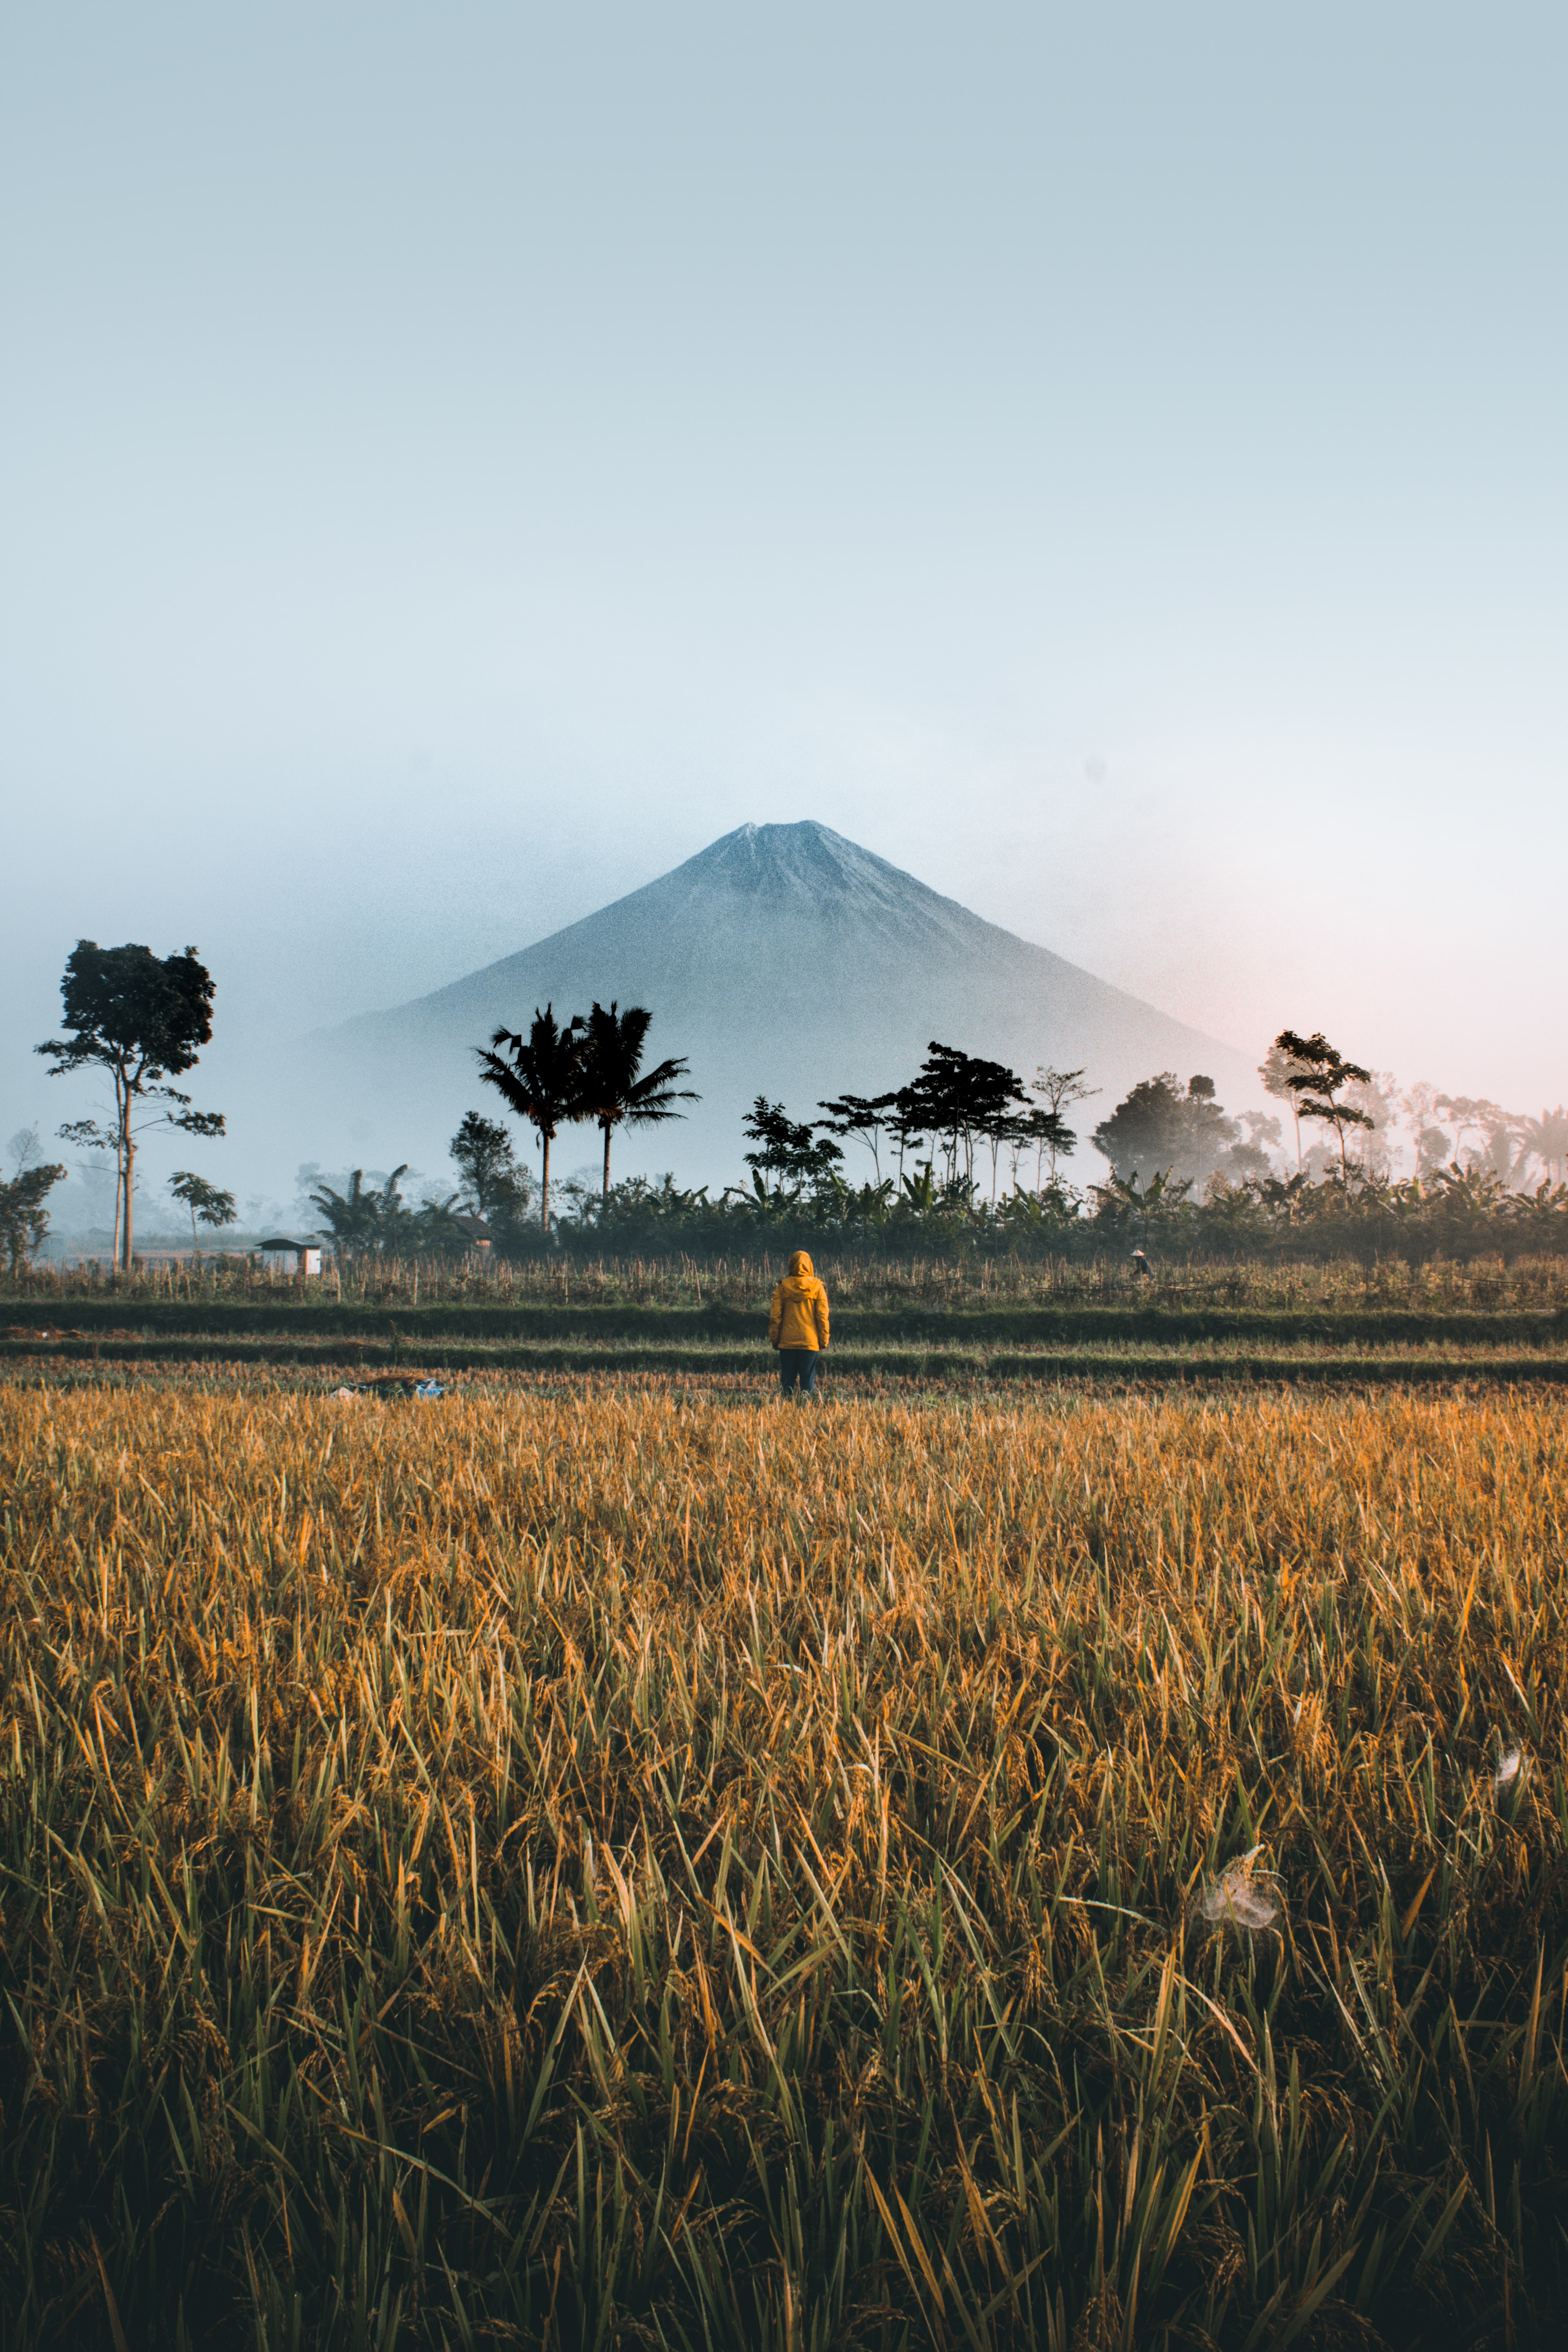 500+ Stunning Indonesia Pictures  Download Free Images on Unsplash